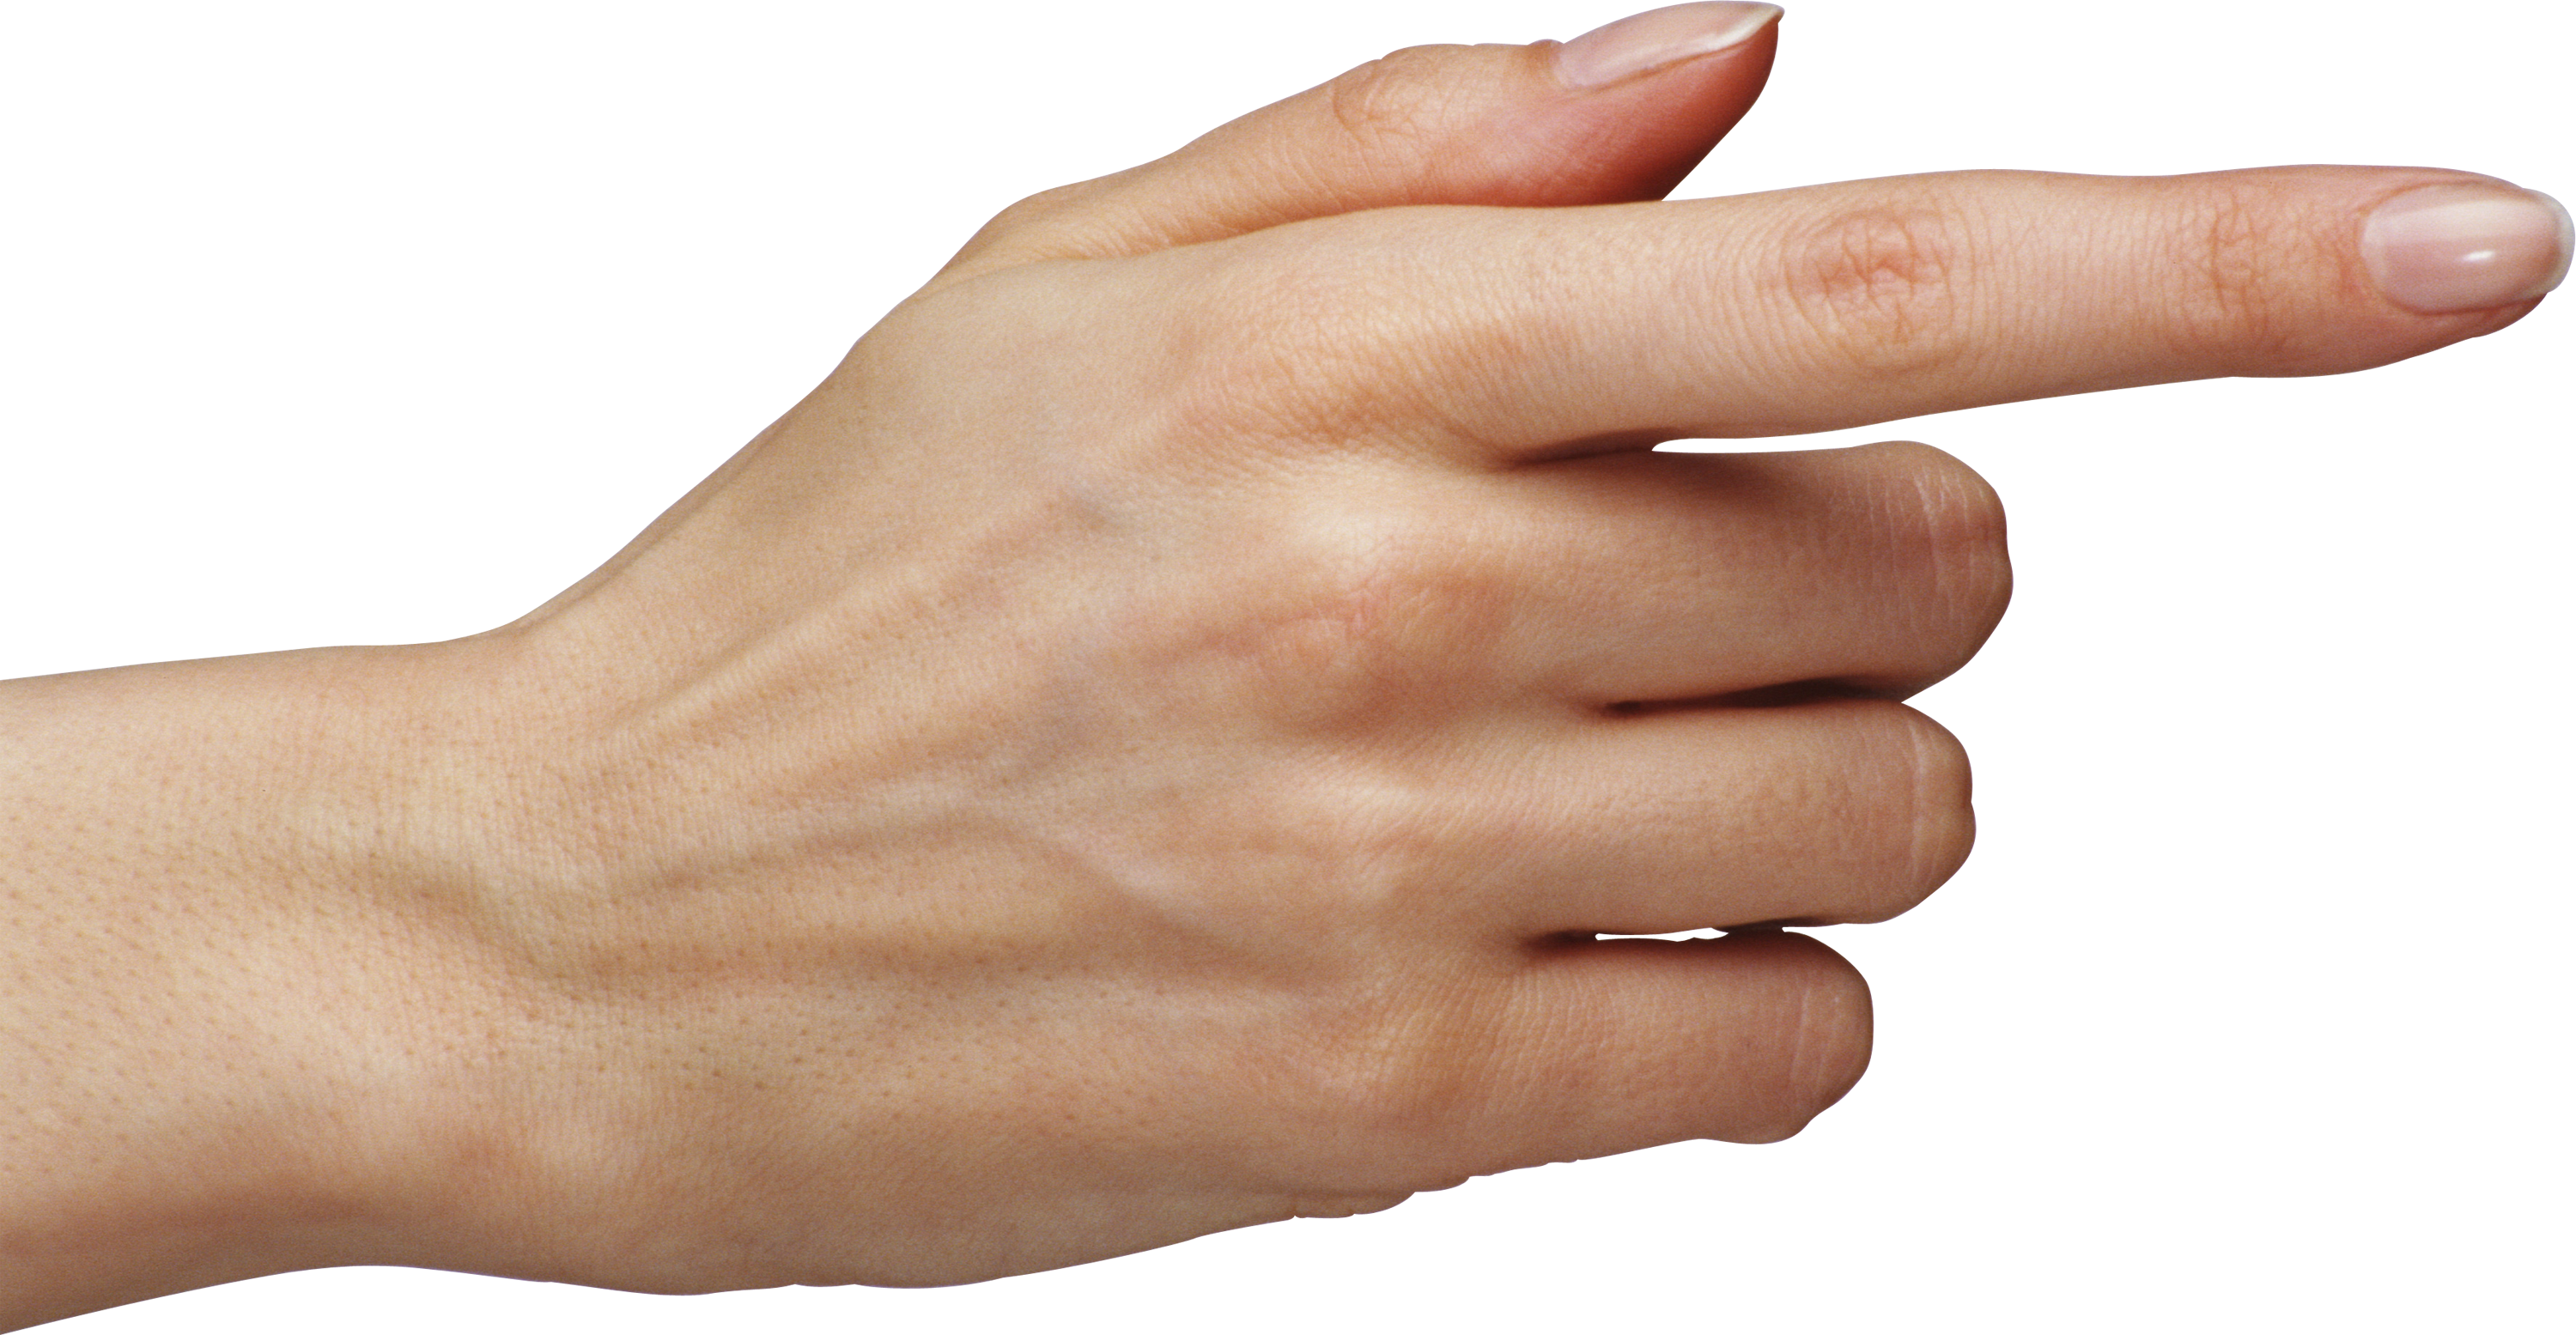 Finger png image cut. Skin clipart skin anatomy